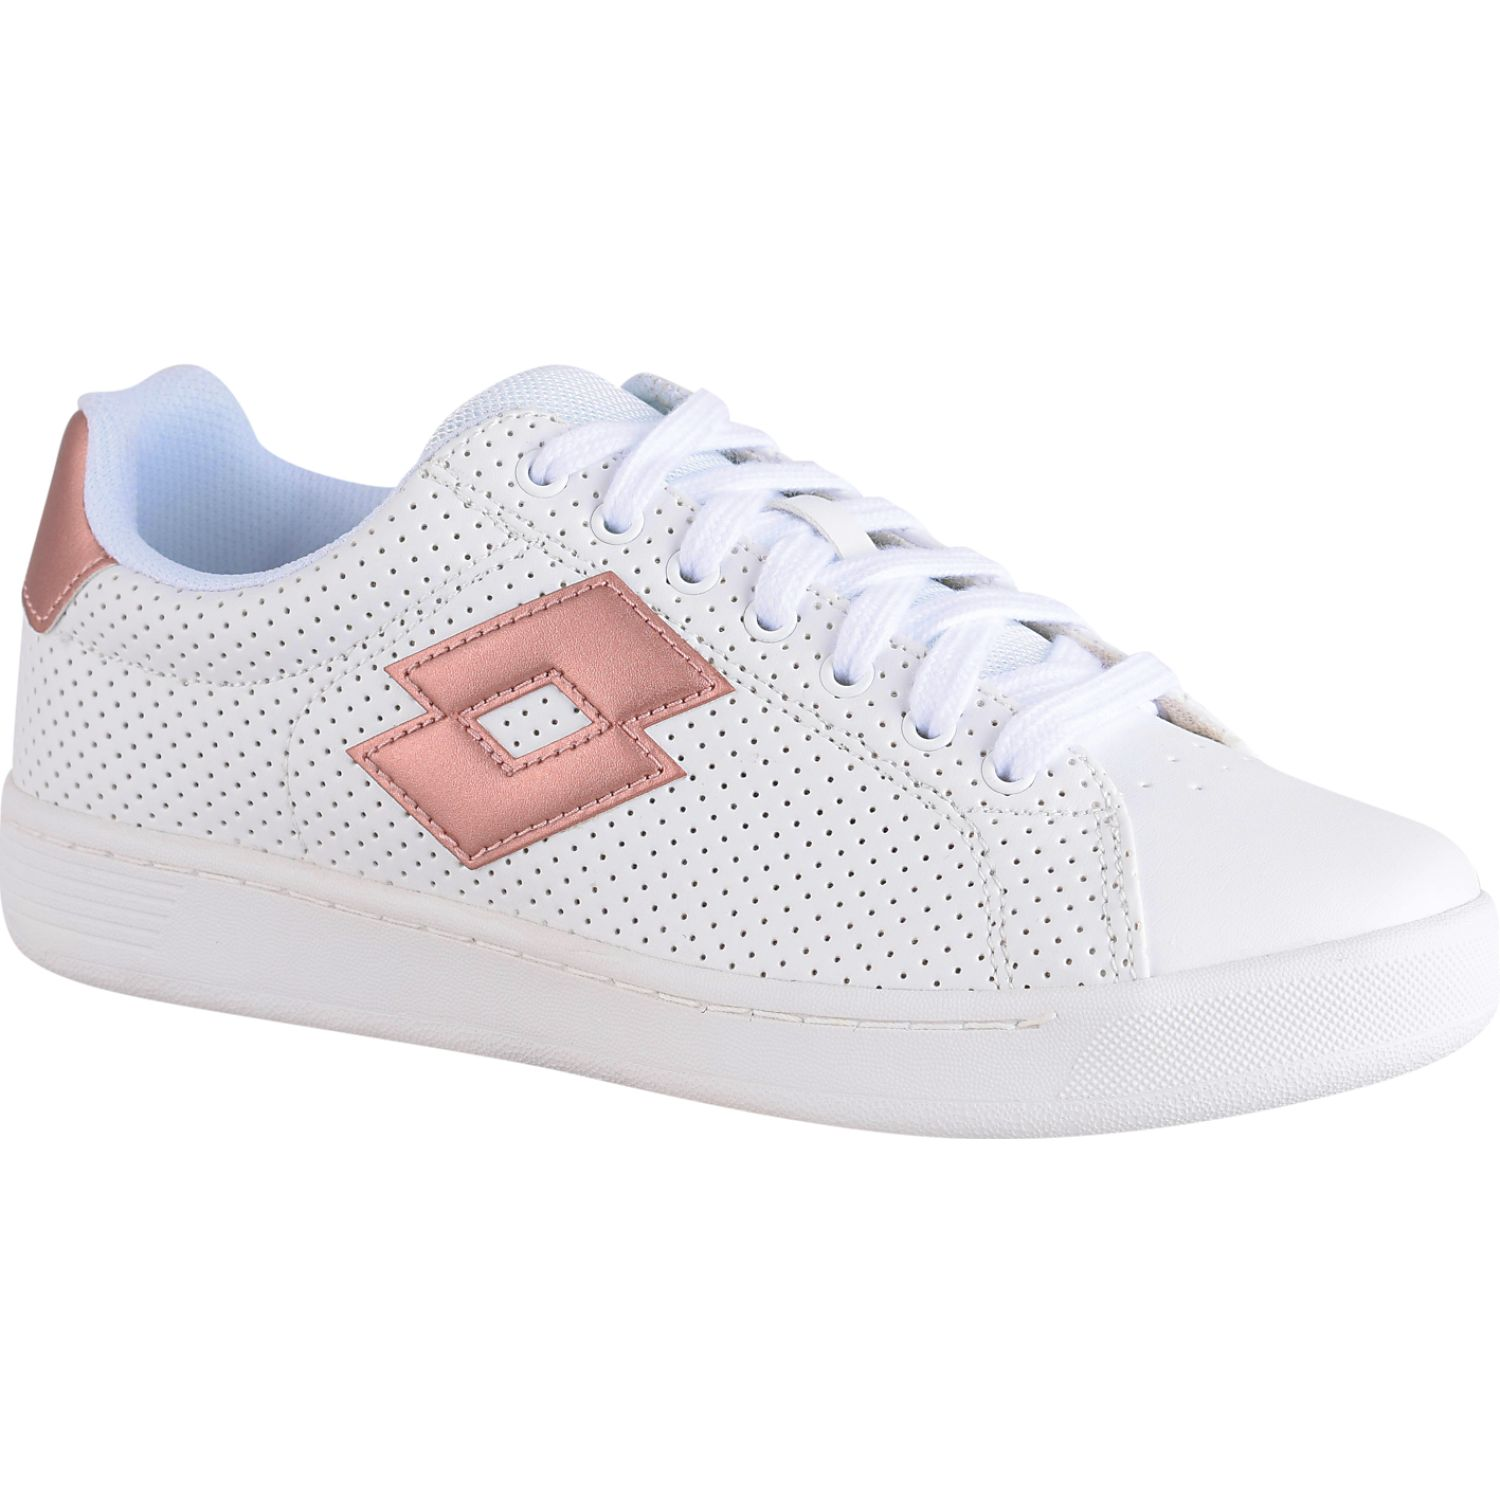 Lotto 1973 ix micro w Blanco / rosado Walking